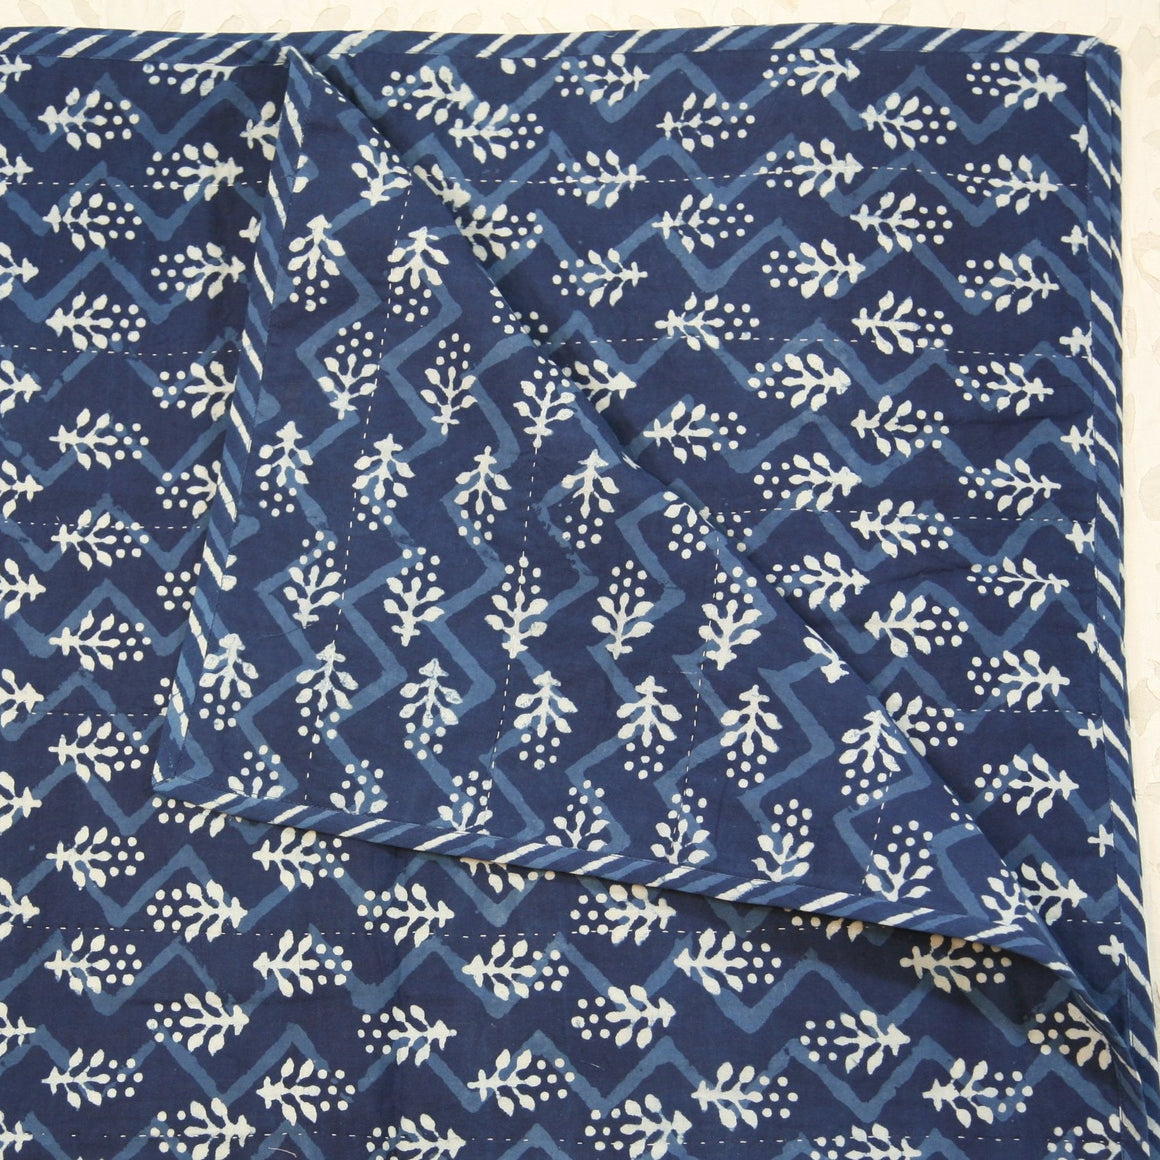 Quilted Couch Throw in Hand Block Indigo Flower Buti Print